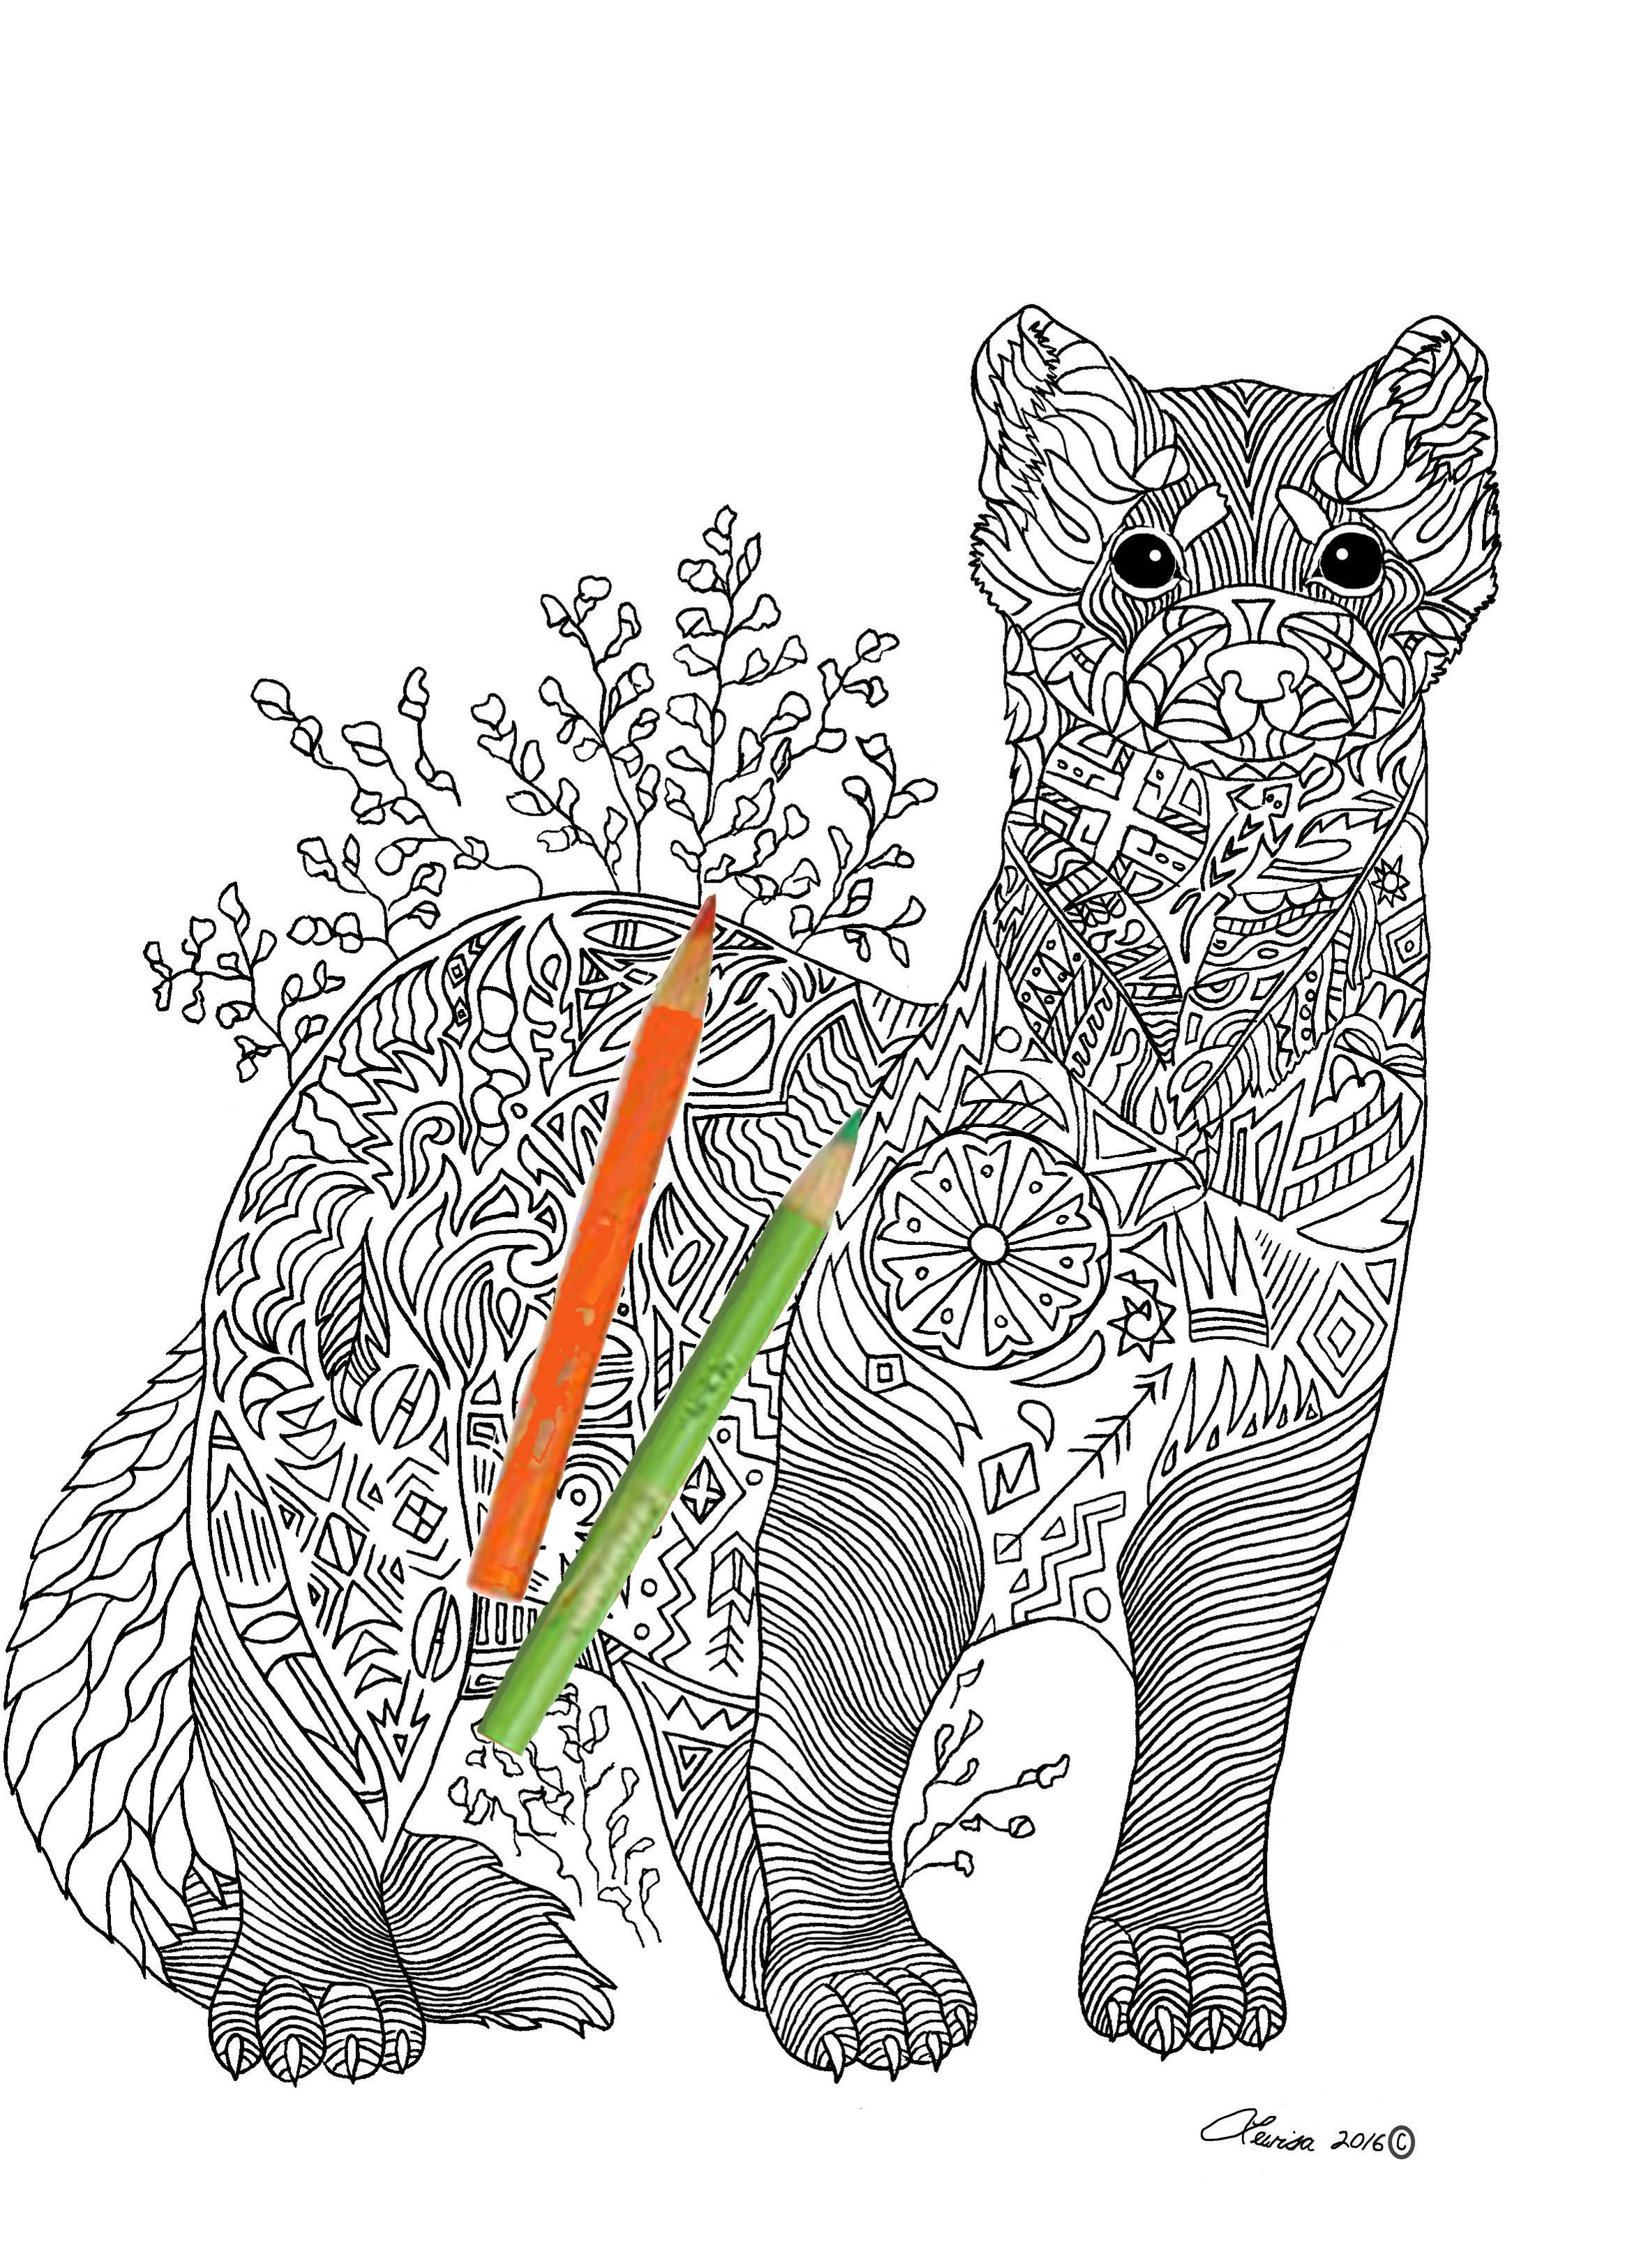 Black Footed Ferret Image From My Coloring Book Created To Bring